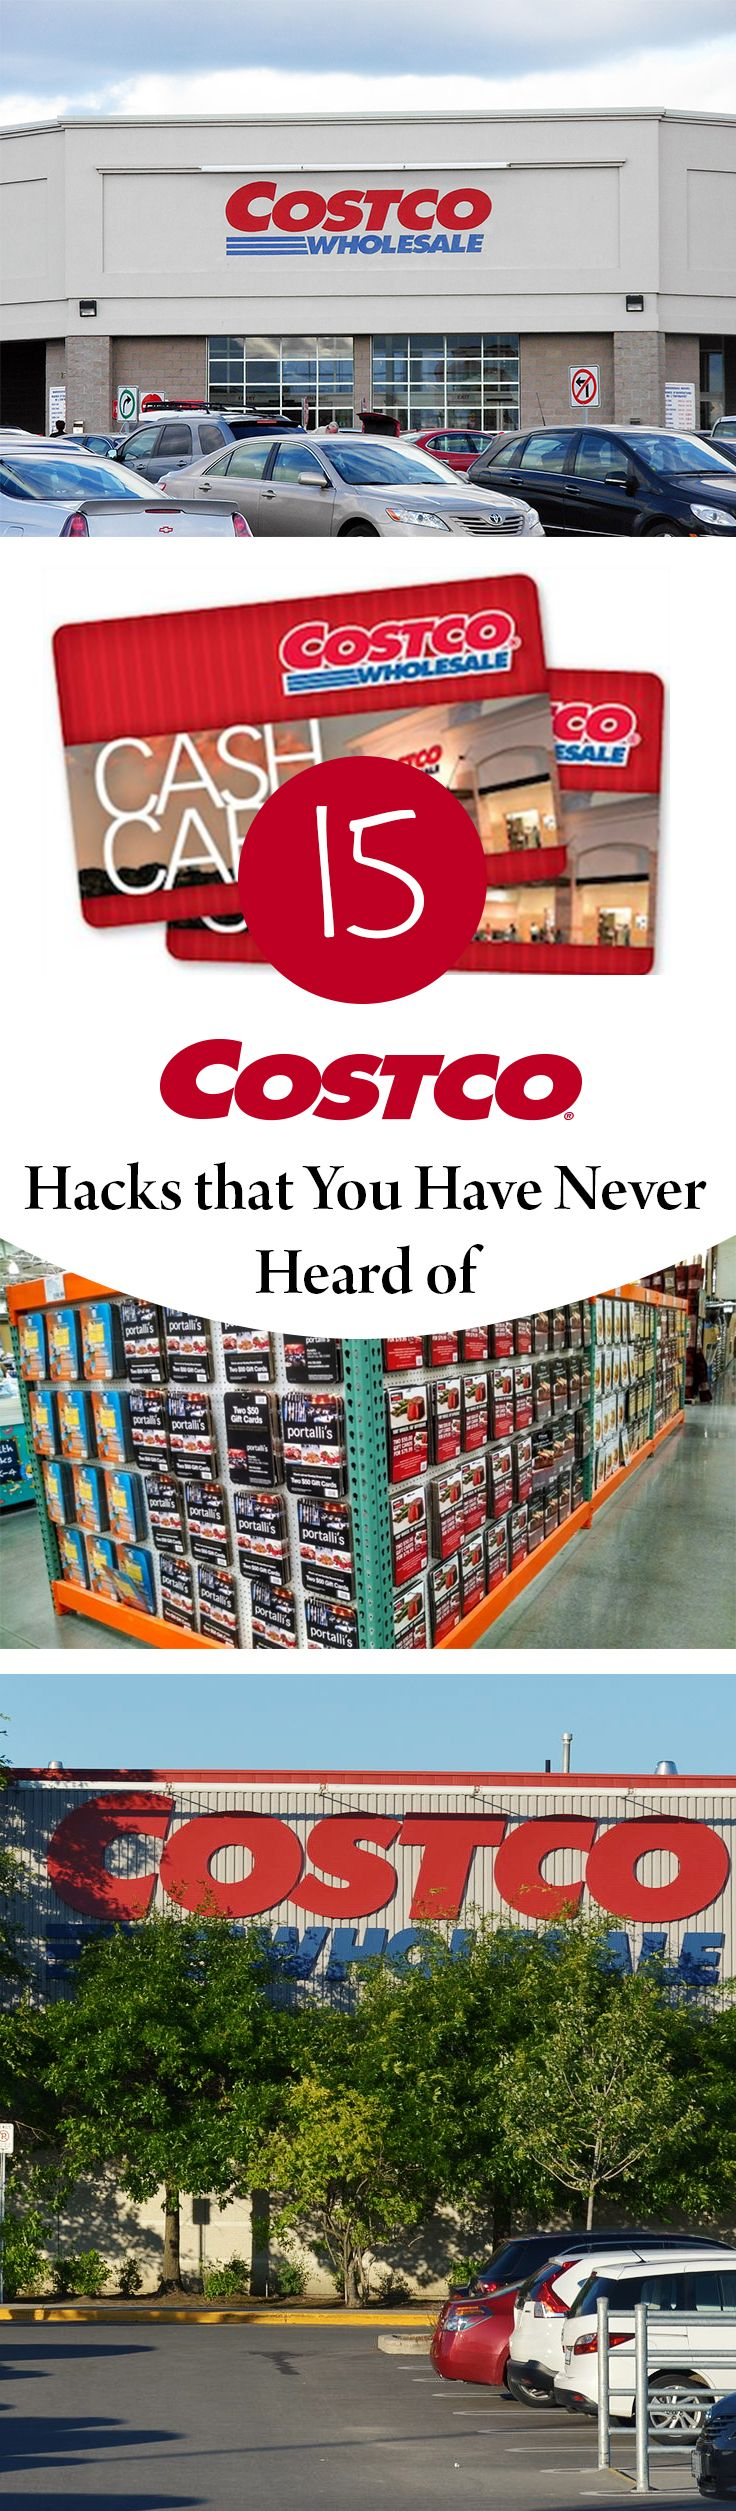 Michaels coupon money saving mom 174 - 15 Costco Hacks That You Have Never Heard Of